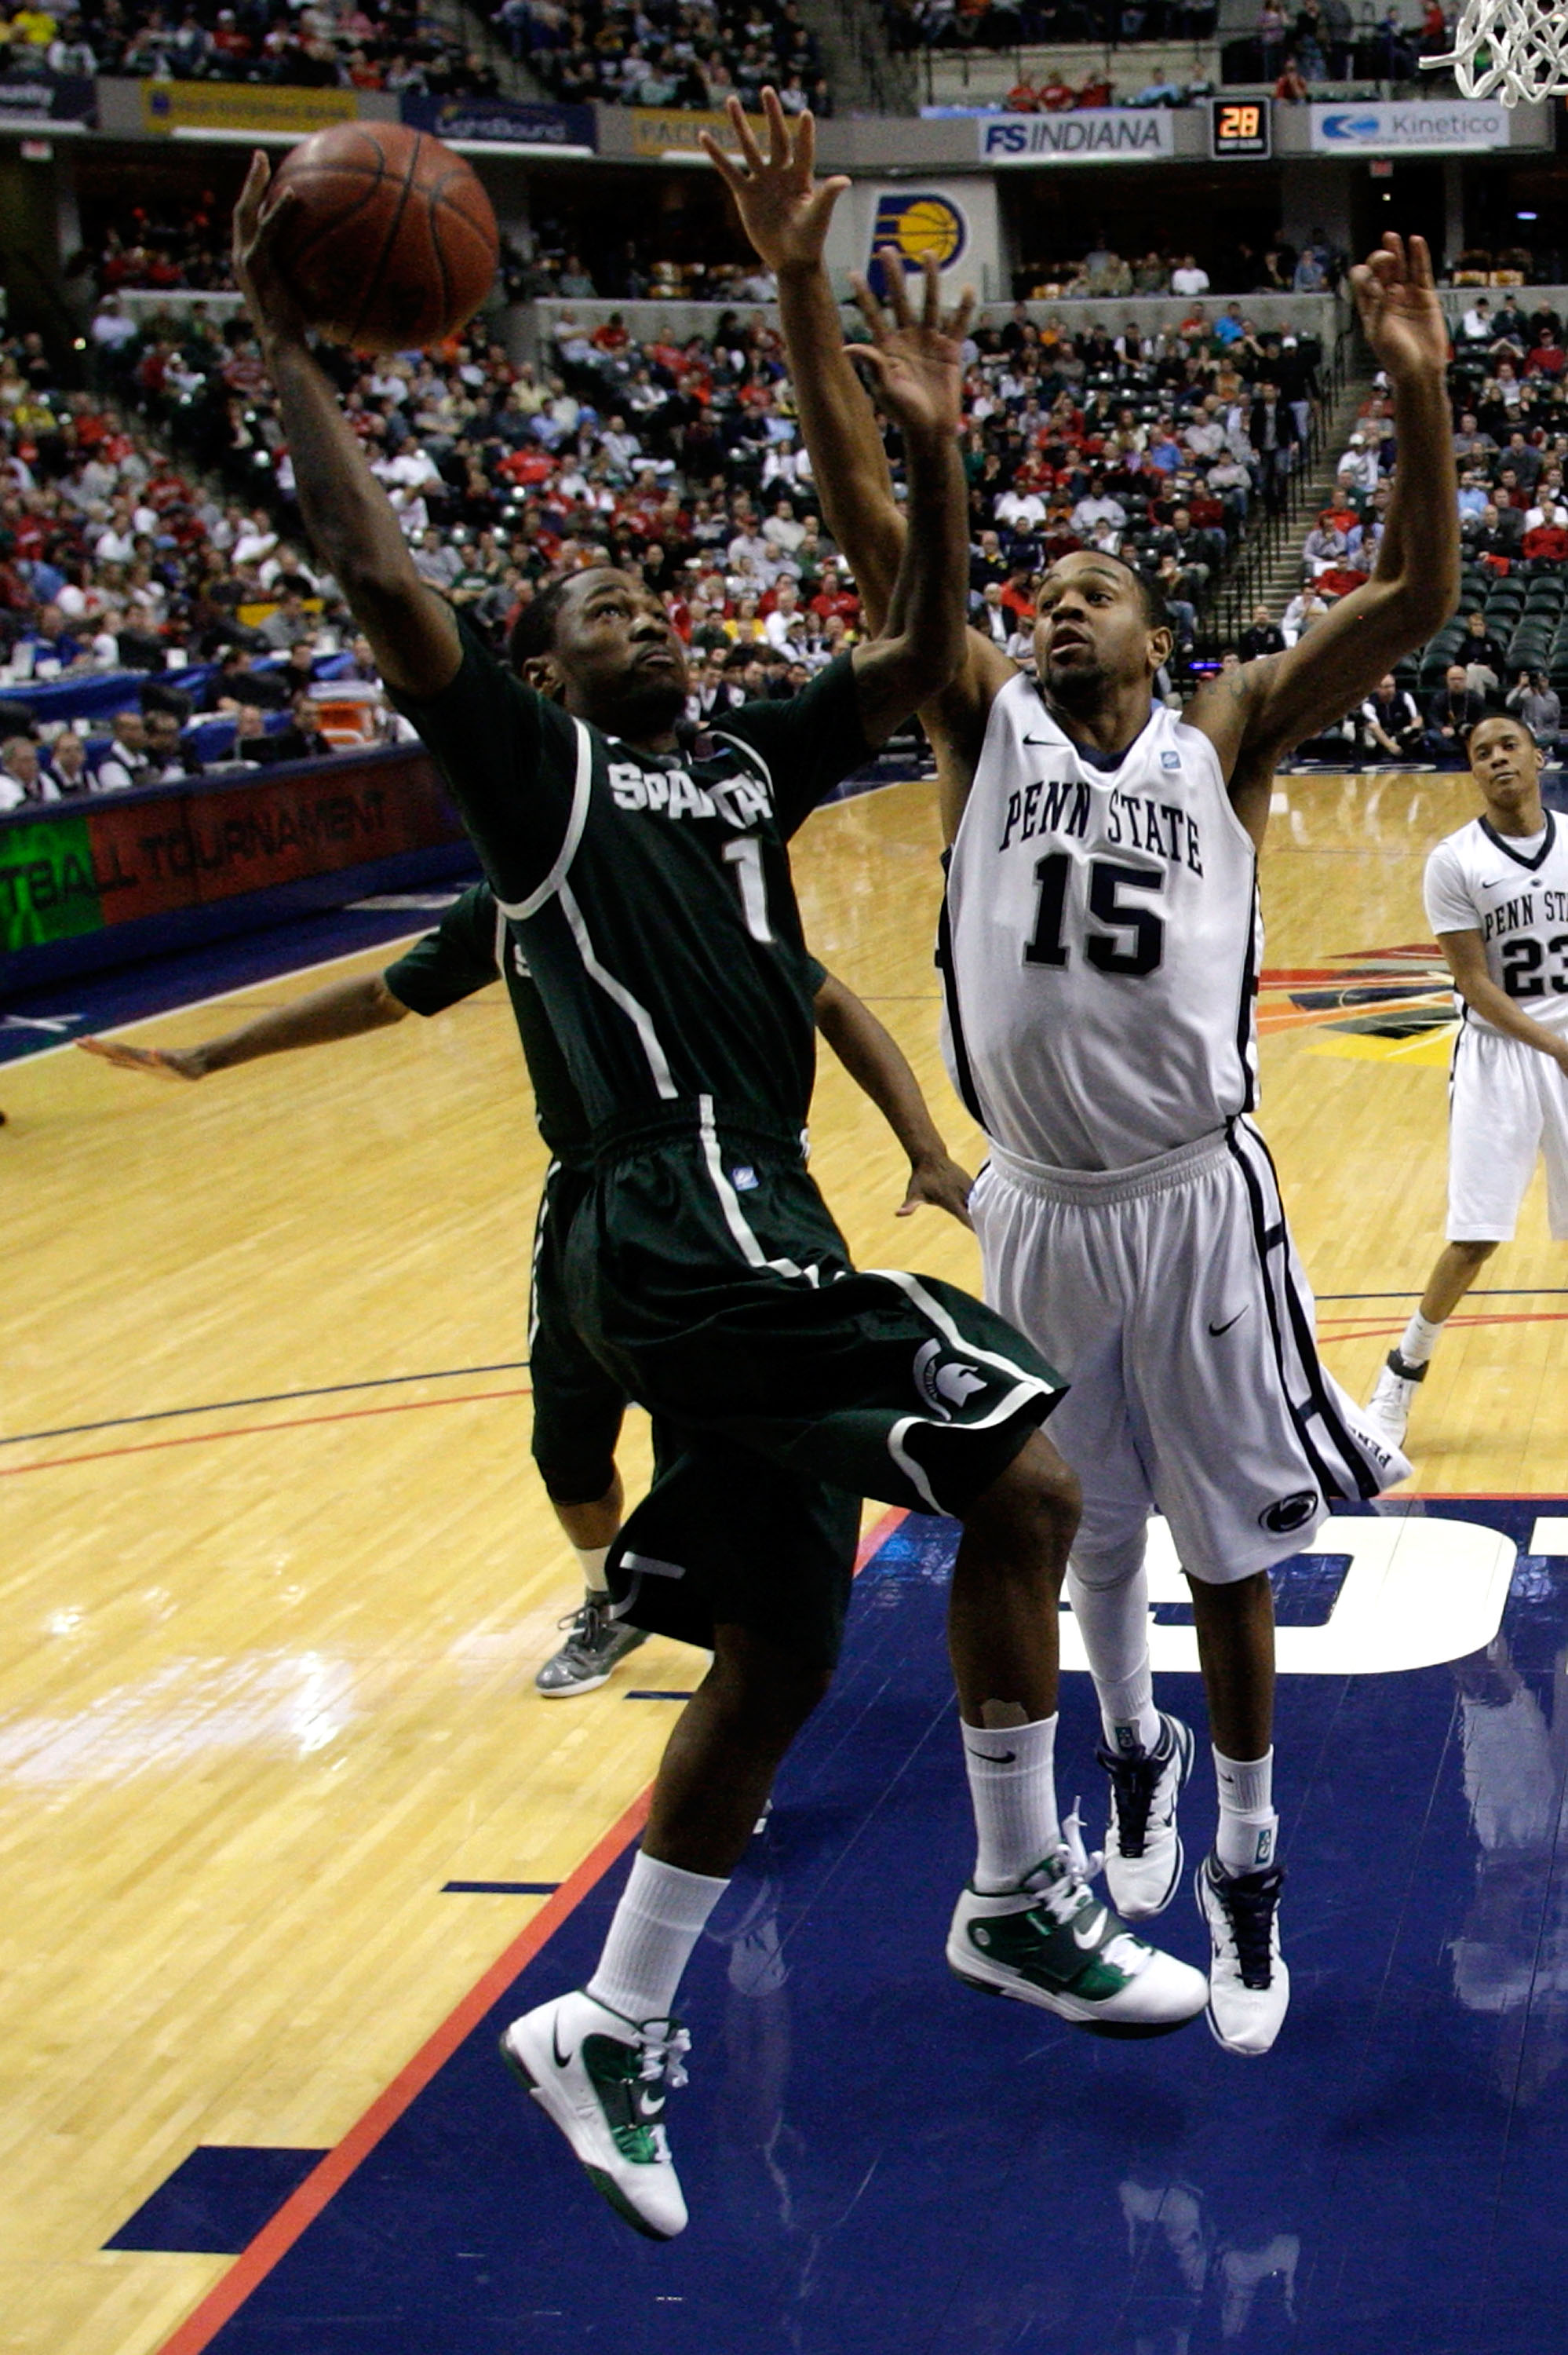 INDIANAPOLIS, IN - MARCH 12:  Kalin Lucas #1 of the Michigan State Spartans drives for a shot attempt against David Jackson #15 of the Penn State Nittany Lions during the semifinals of the 2011 Big Ten Men's Basketball Tournament at Conseco Fieldhouse on